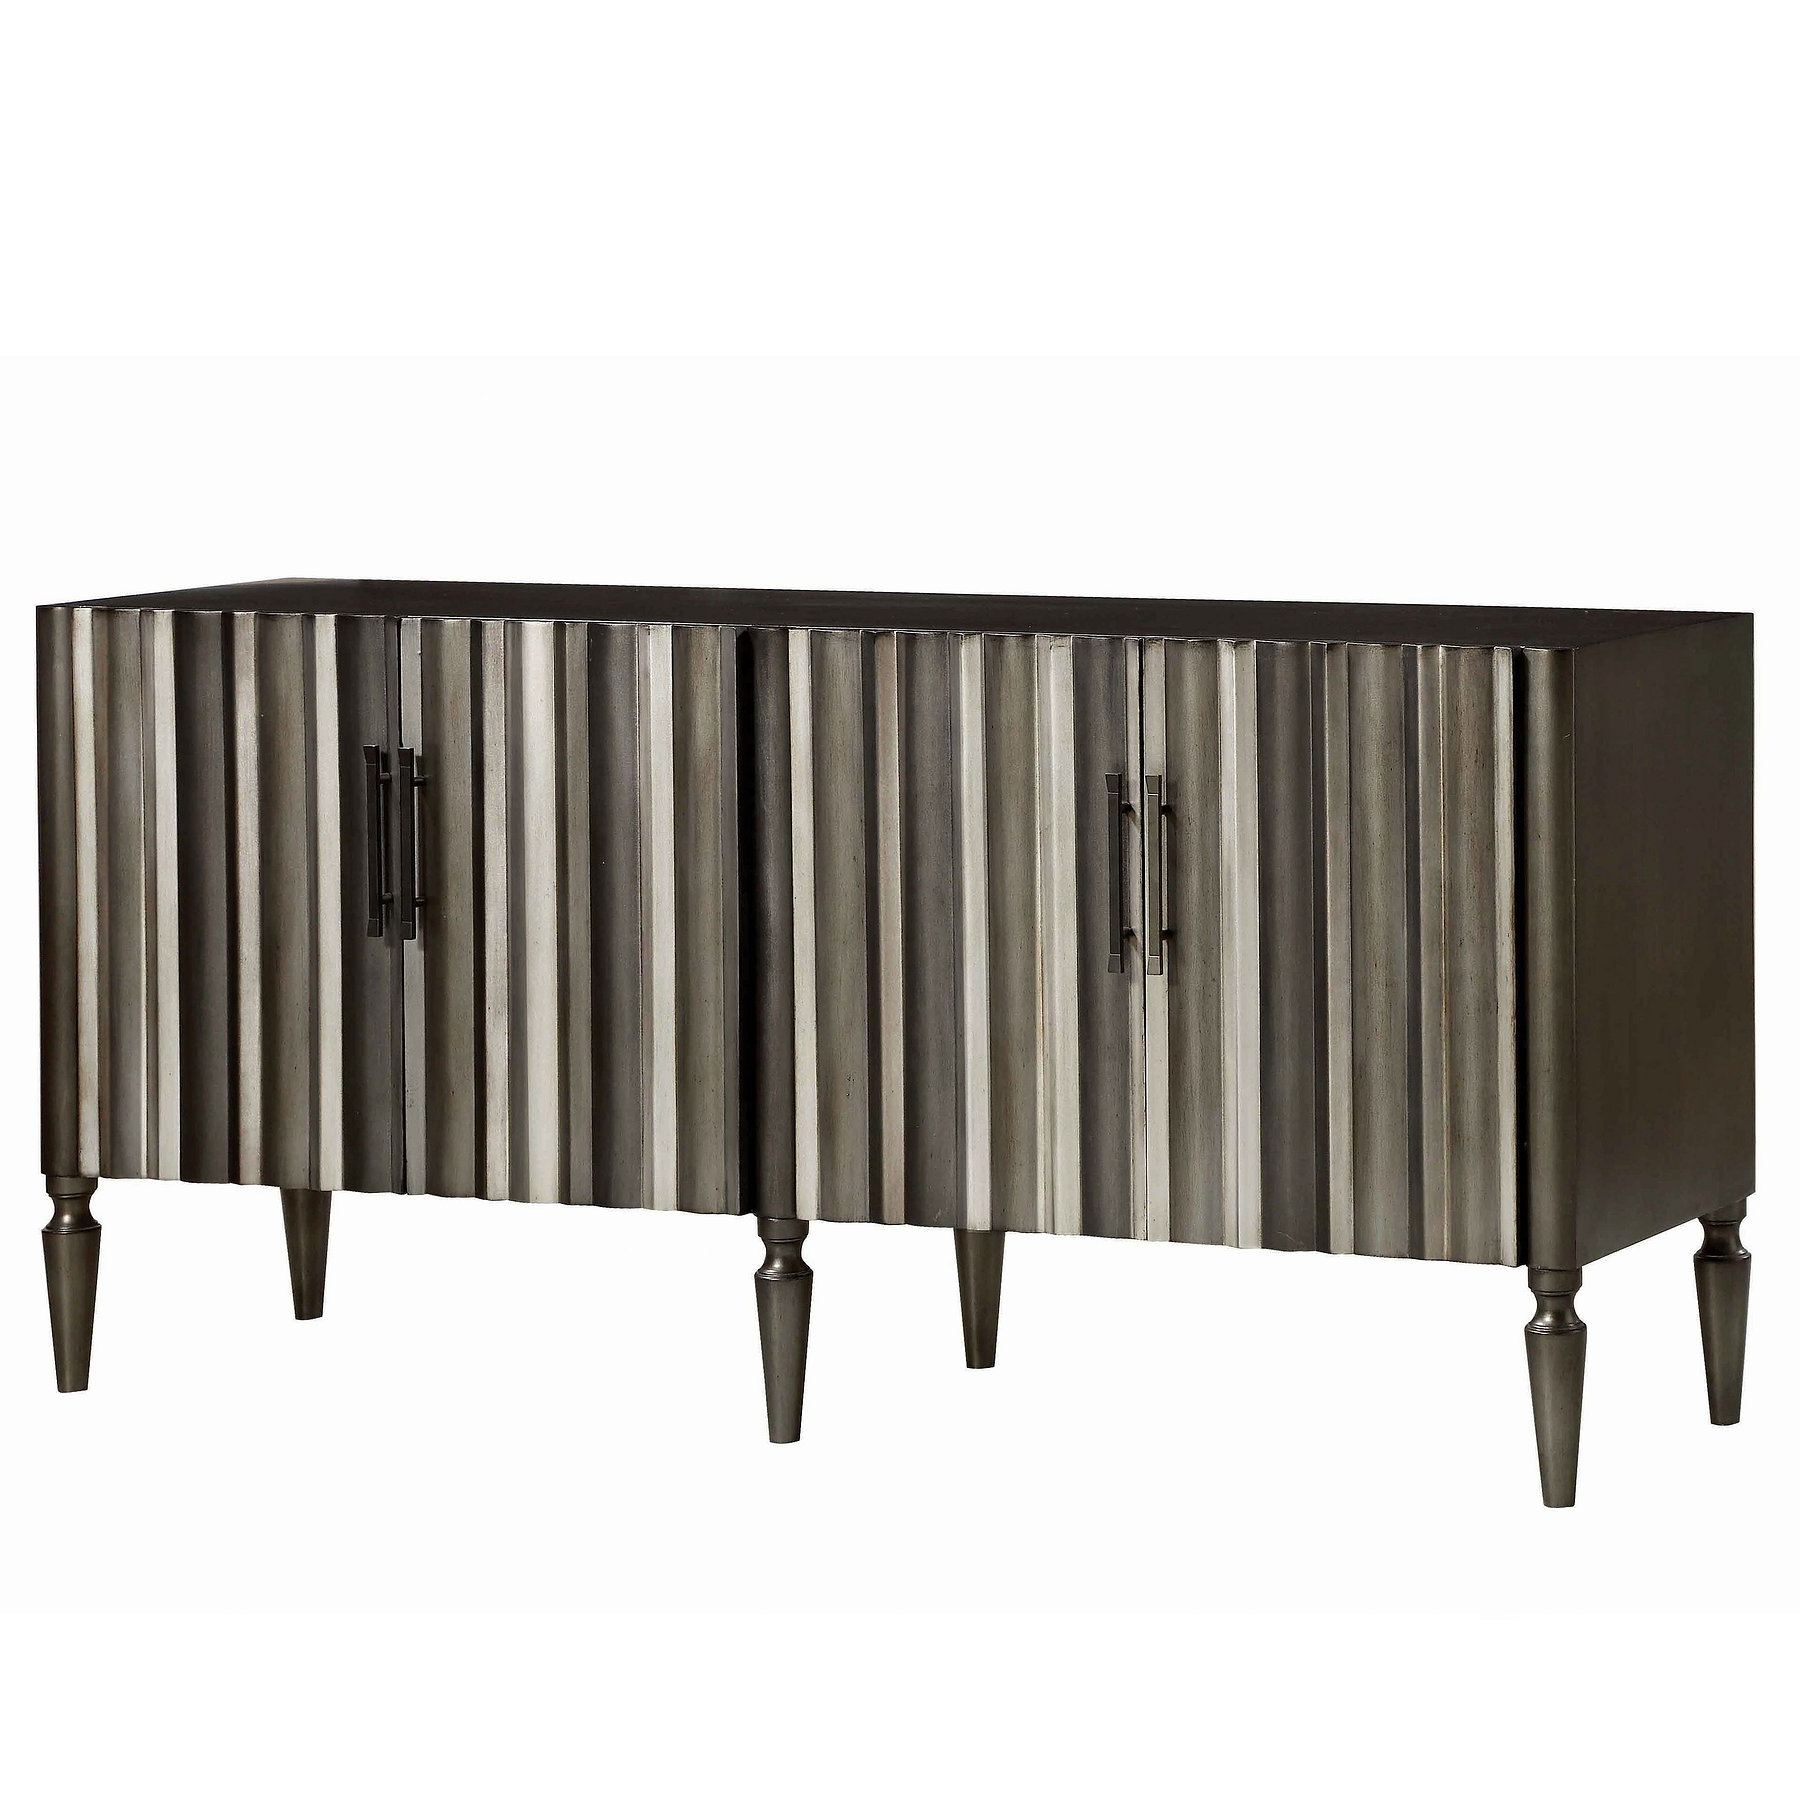 30527 Credenza With Regard To Pale Pink Agate Wood Credenzas (Gallery 9 of 20)